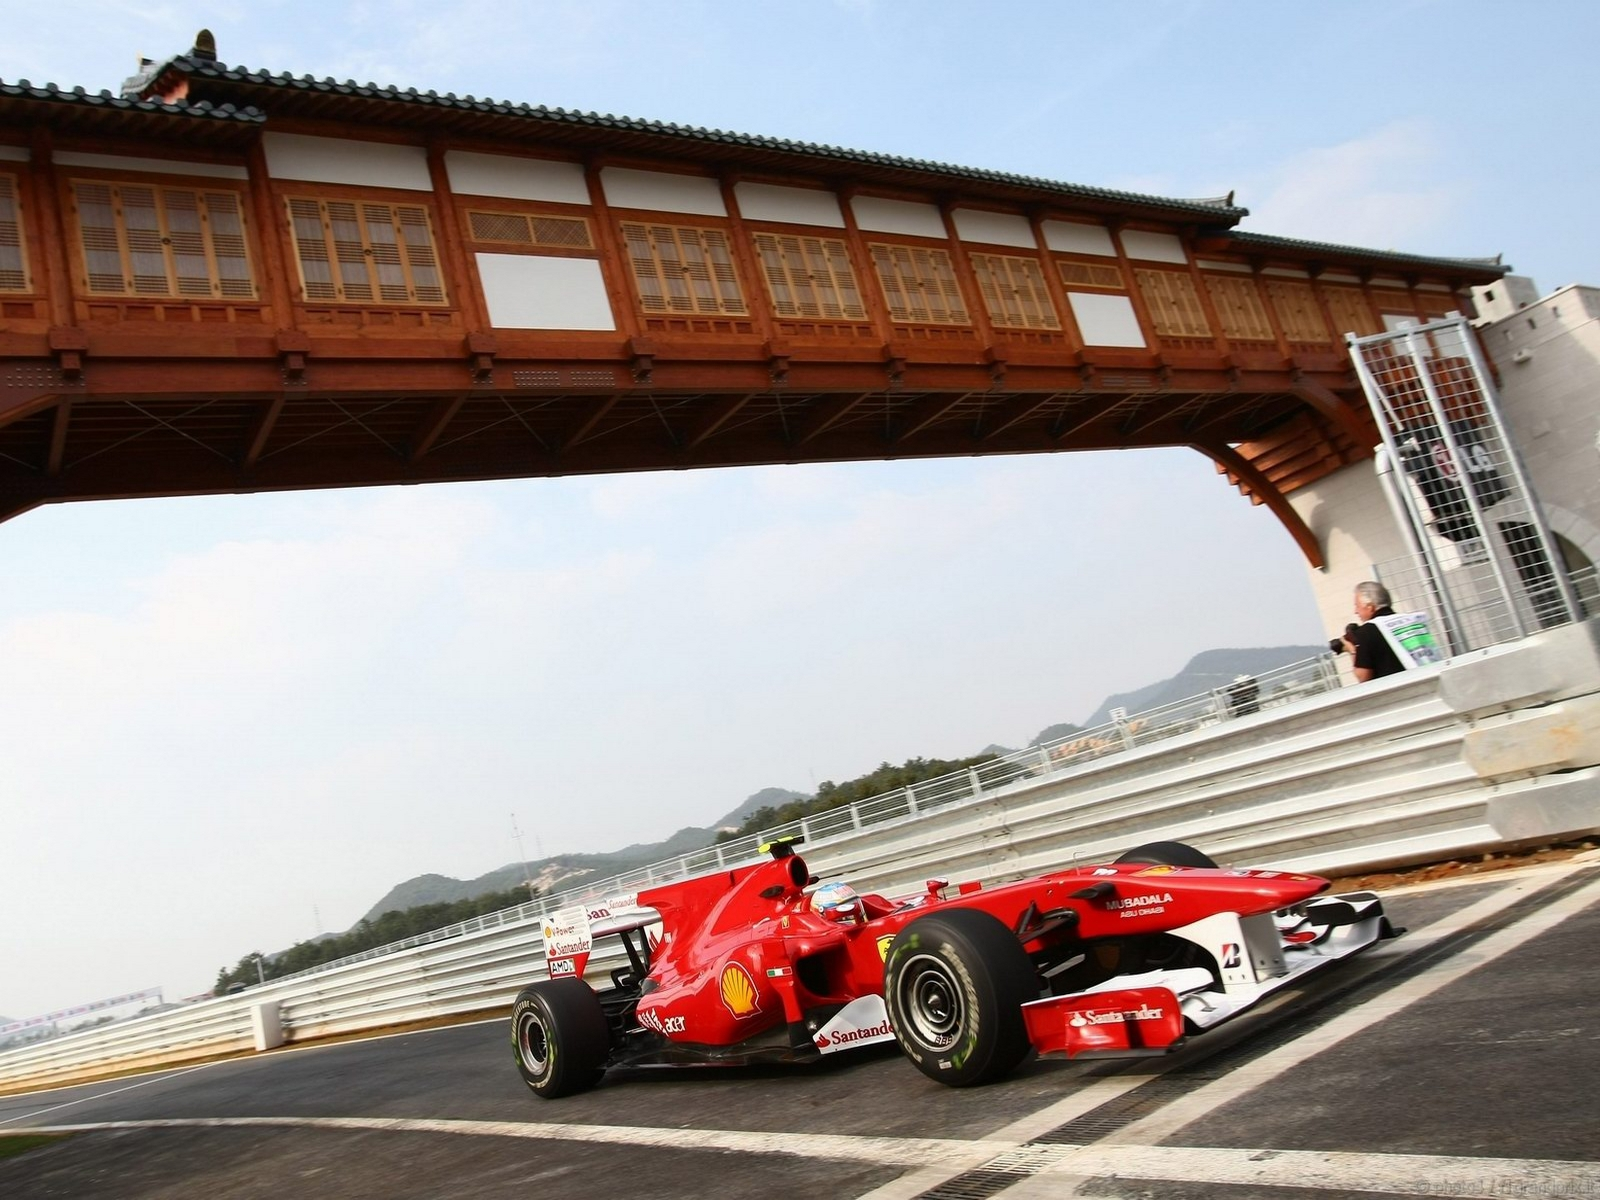 pojazdy - formula1 - gp_corea_wallpapers_000072